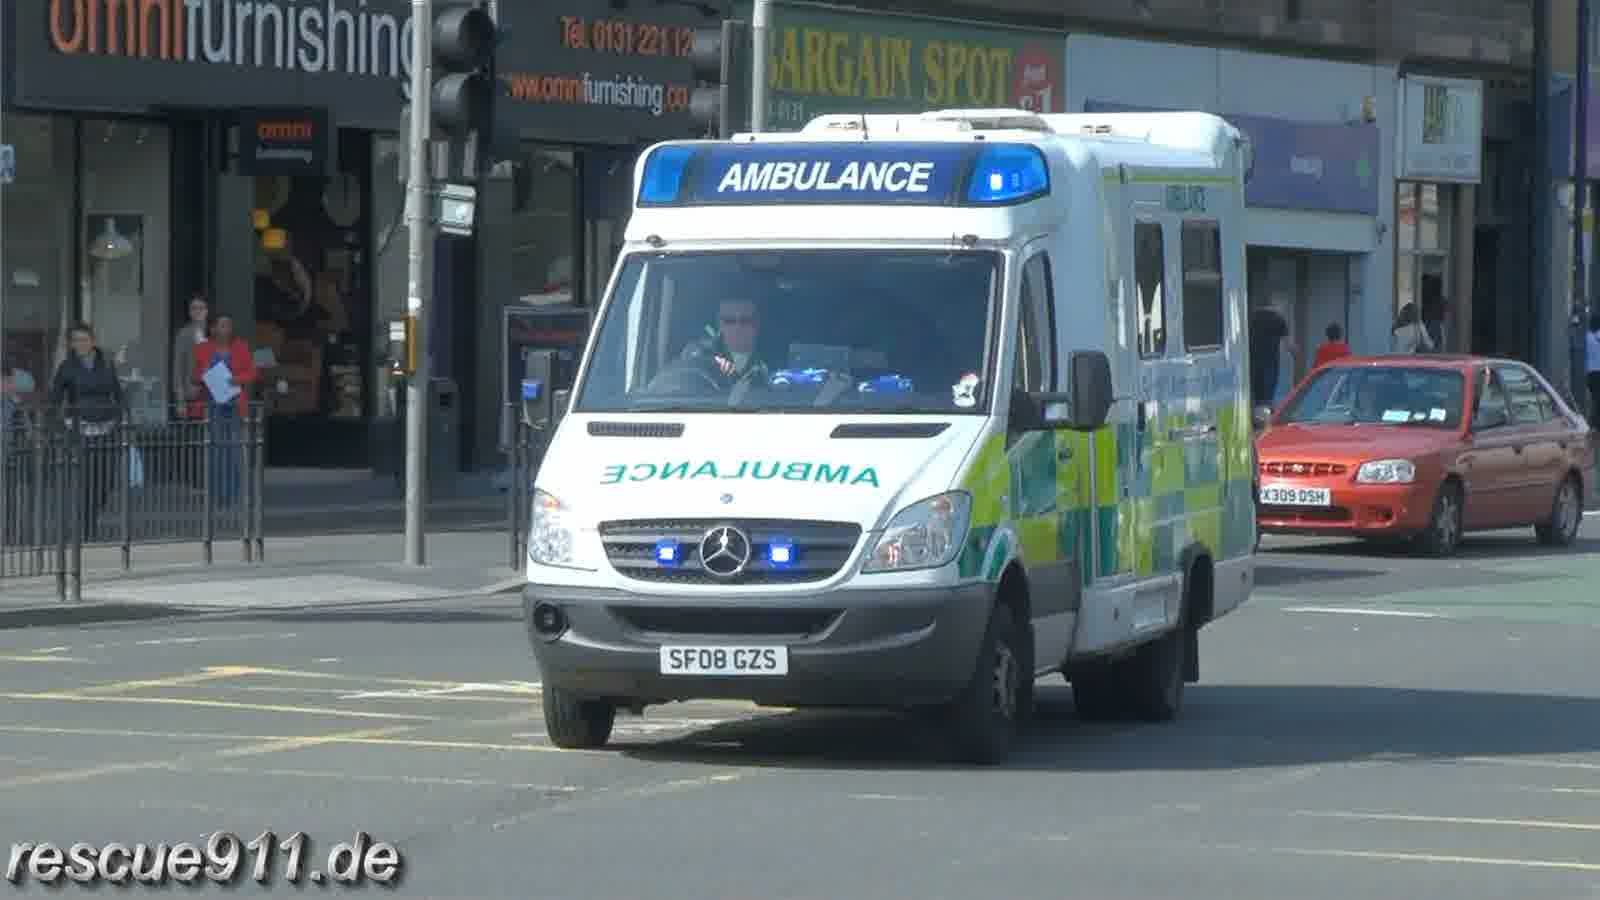 Scottish Ambulance Service (stream)